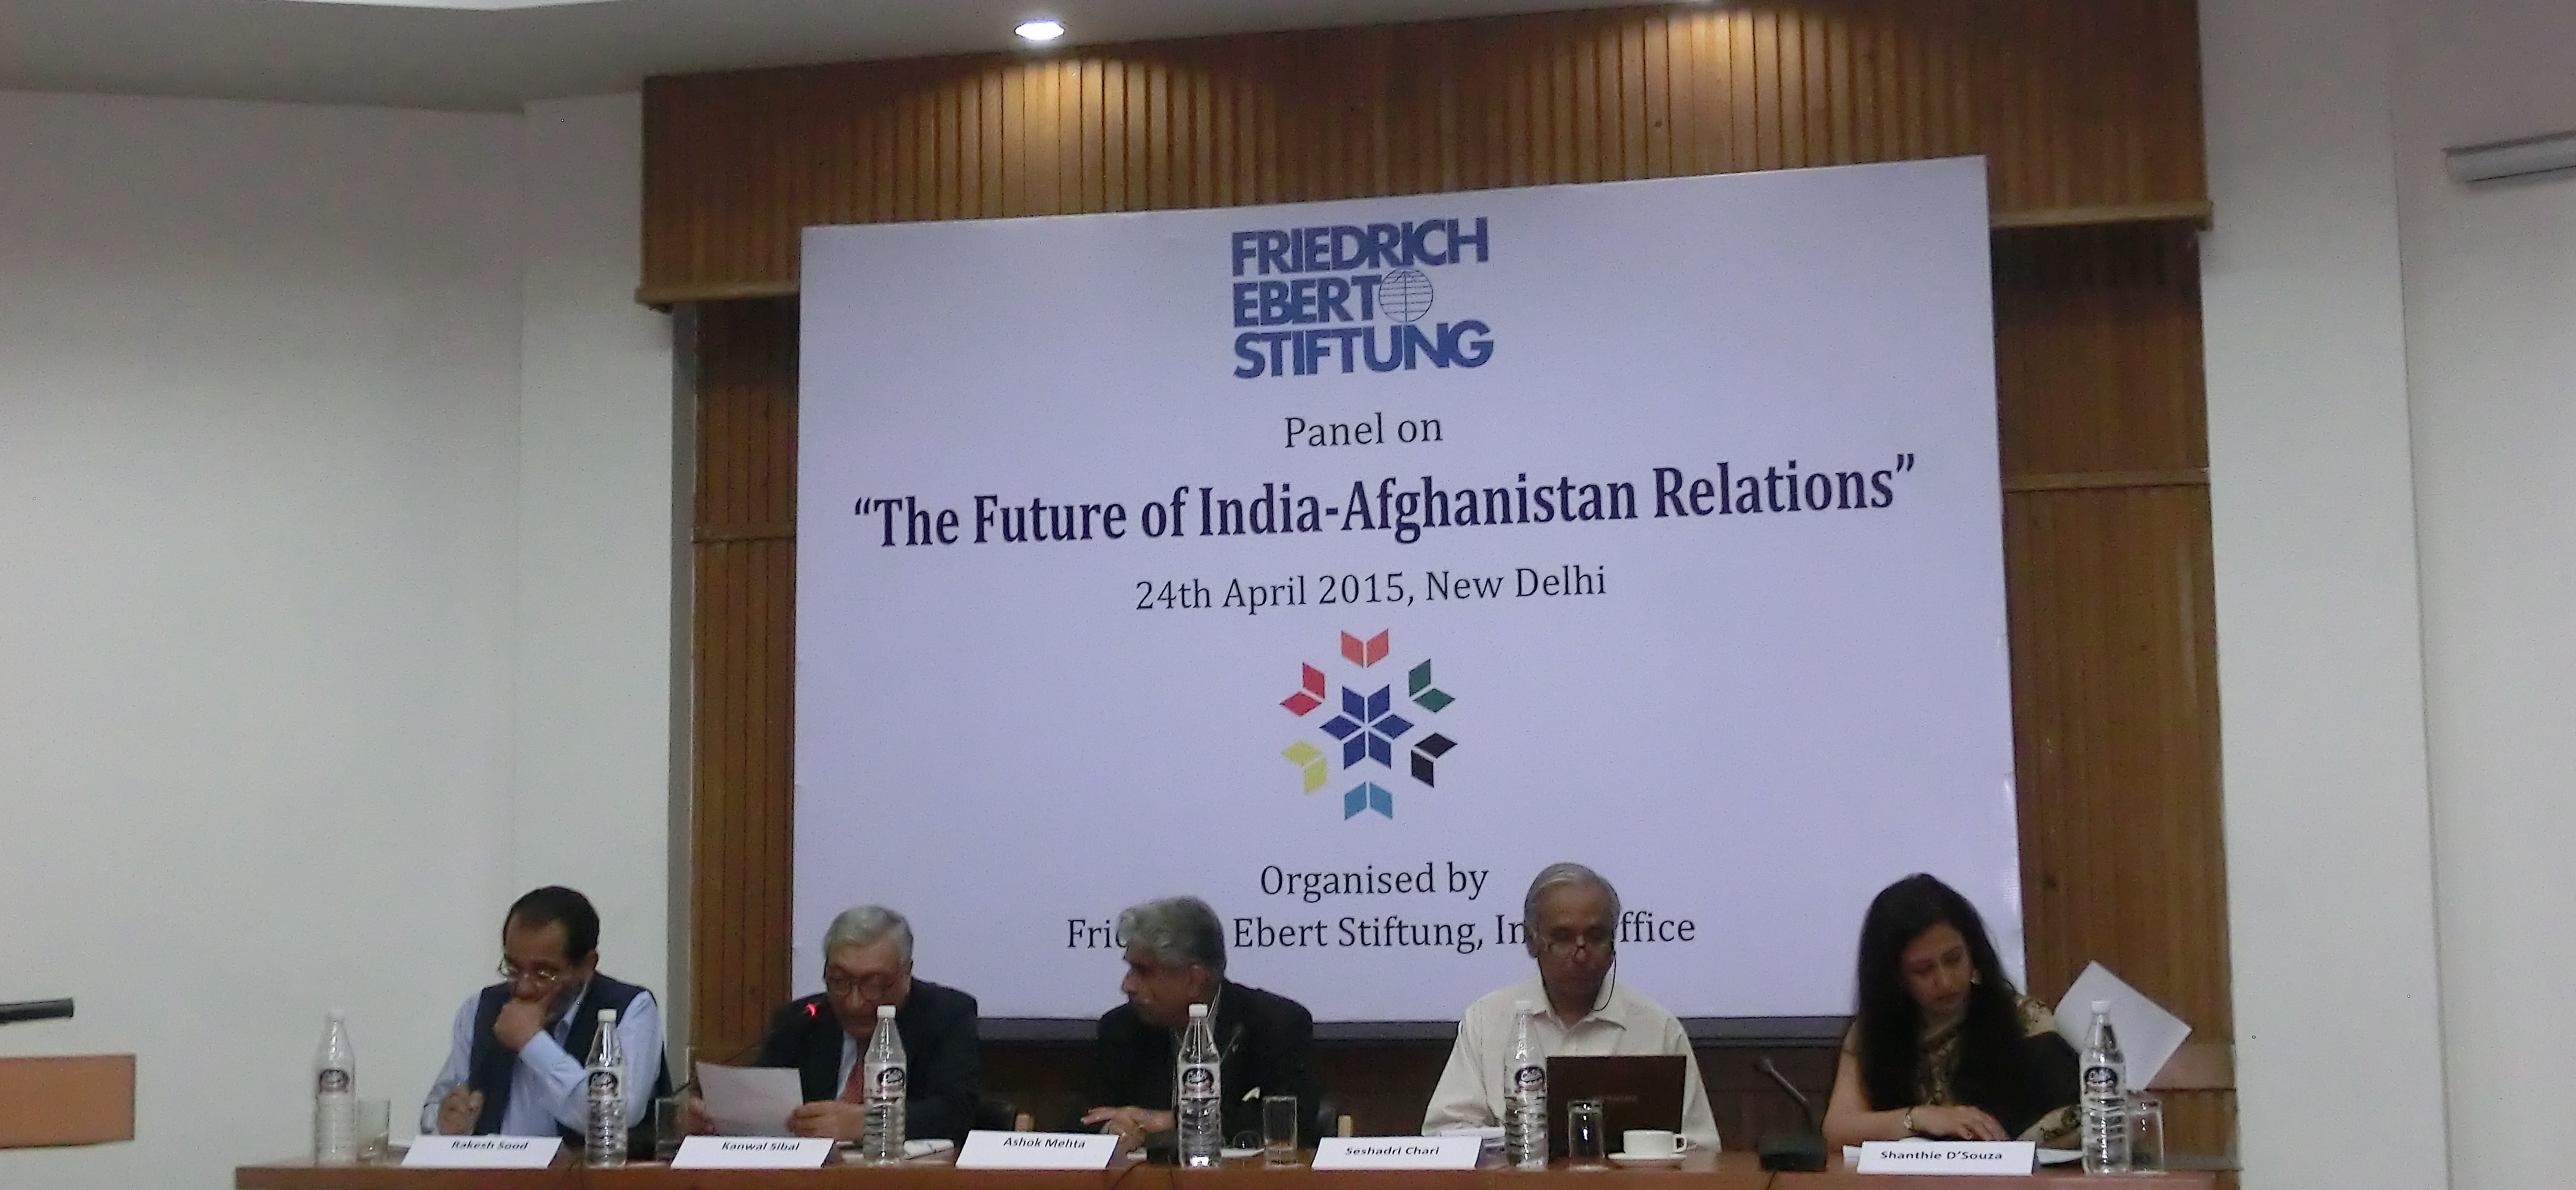 india and afghanistan relationship 2015 form